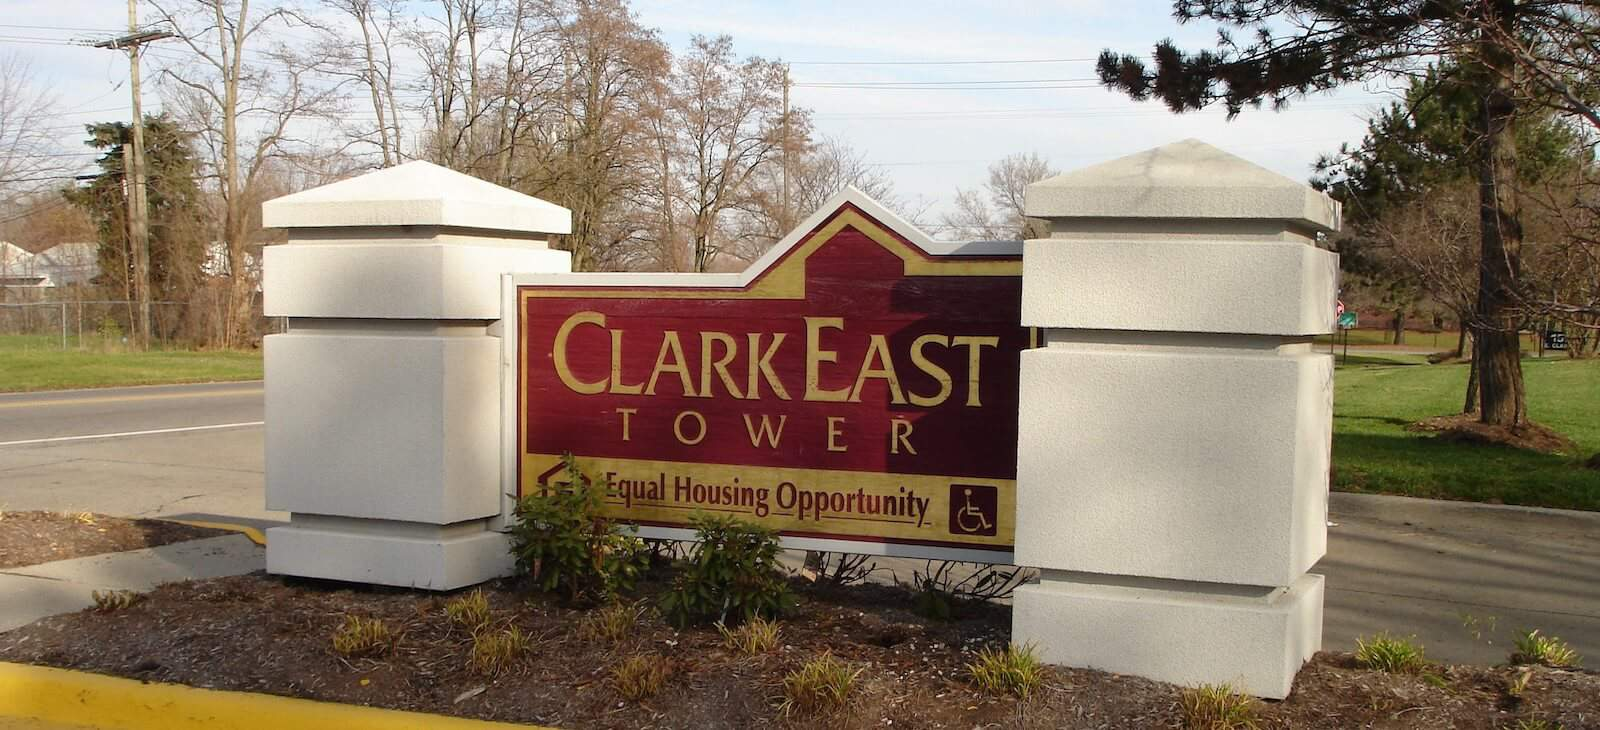 Clark East Tower